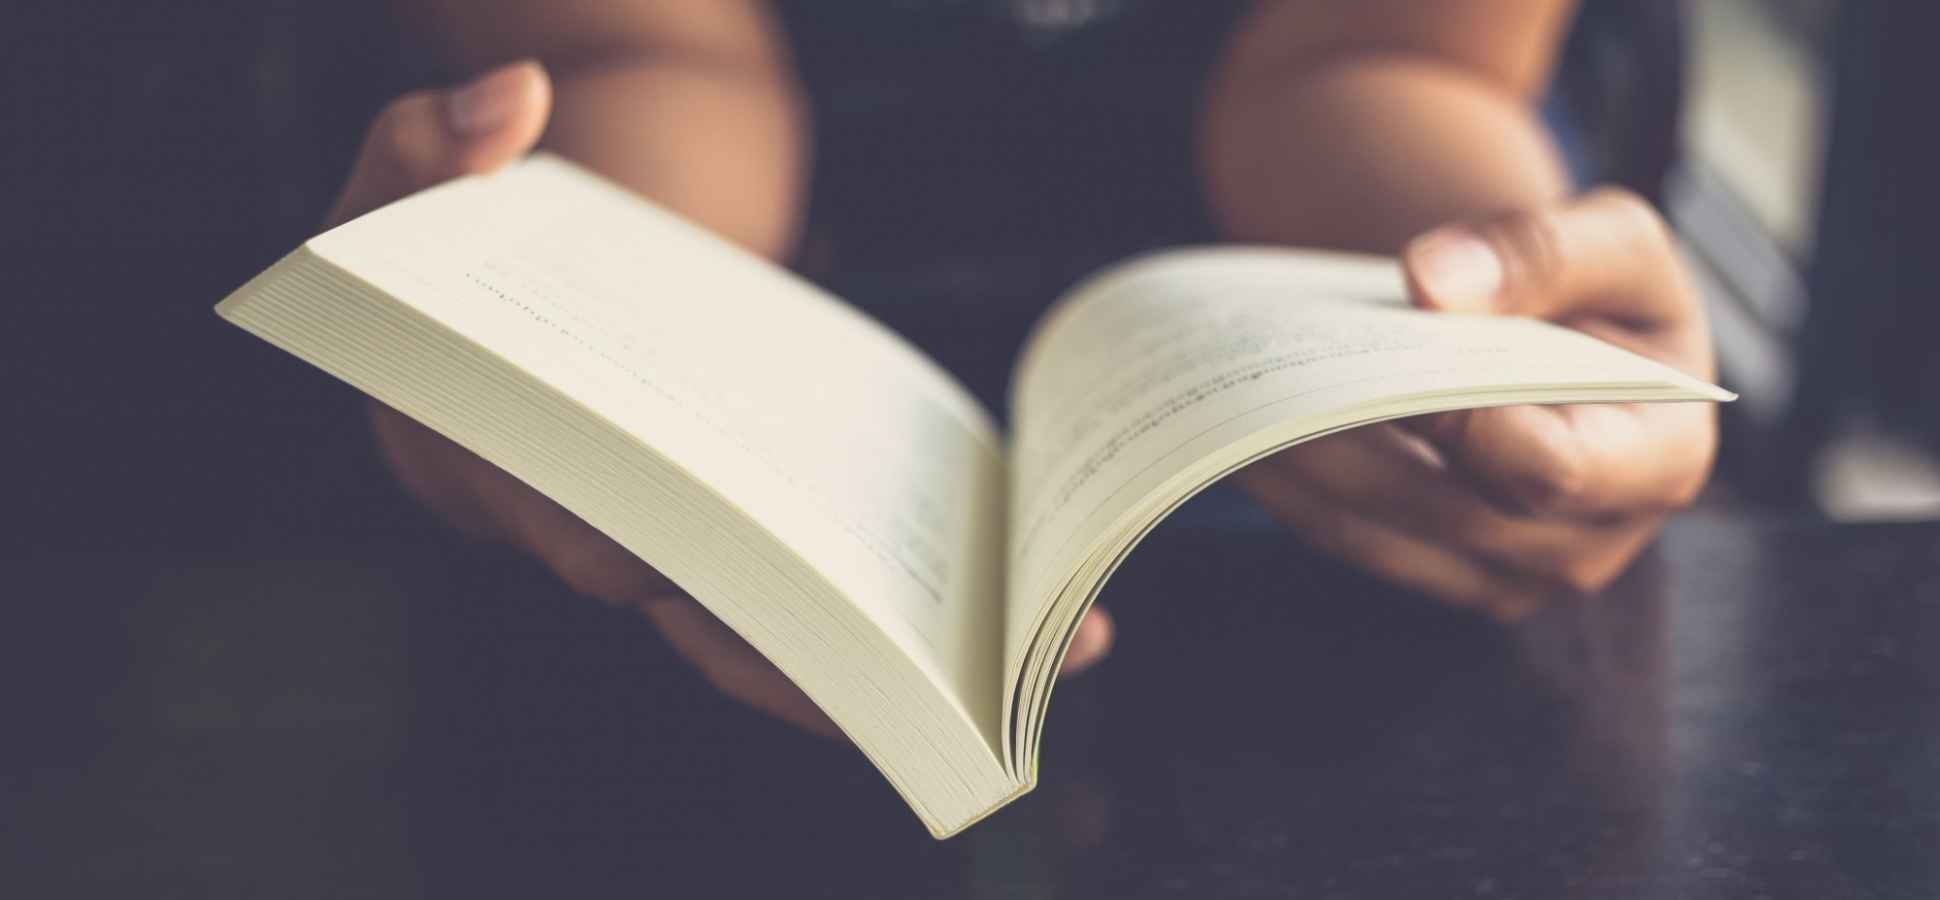 The Science of Why You Should (Sometimes) Ditch Your E-Reader for Old-Fashioned Books